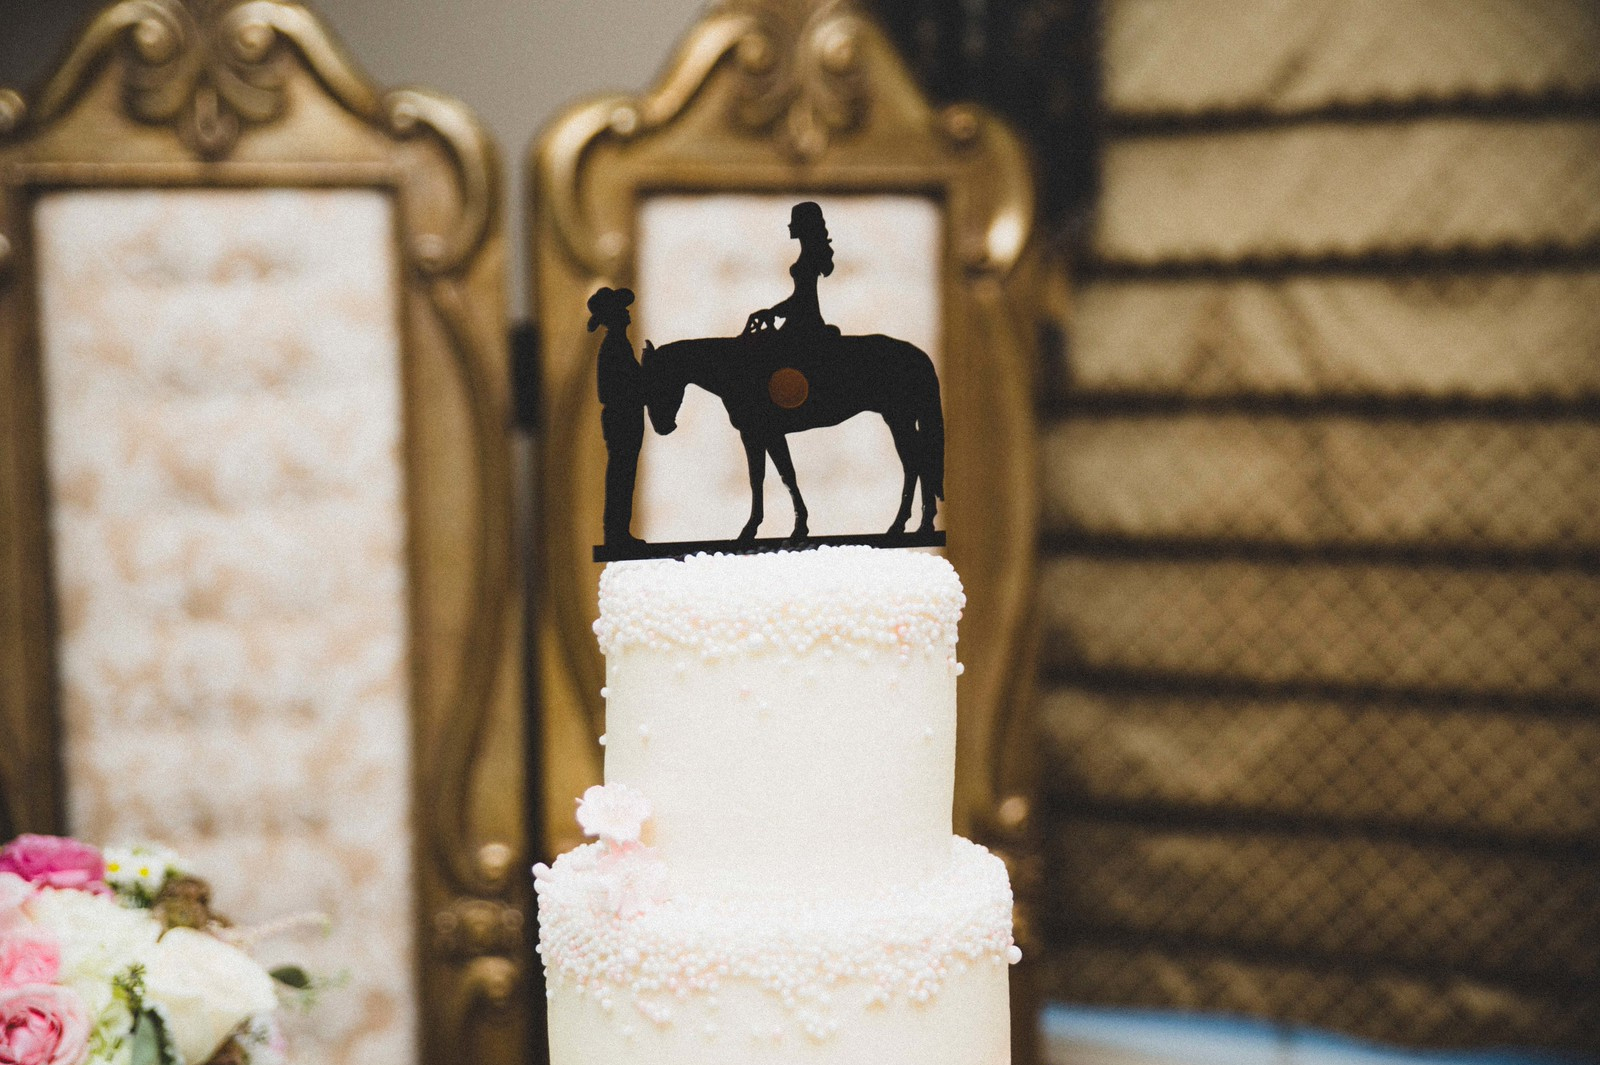 Custom Cake Topper with Silhouette of a Horse